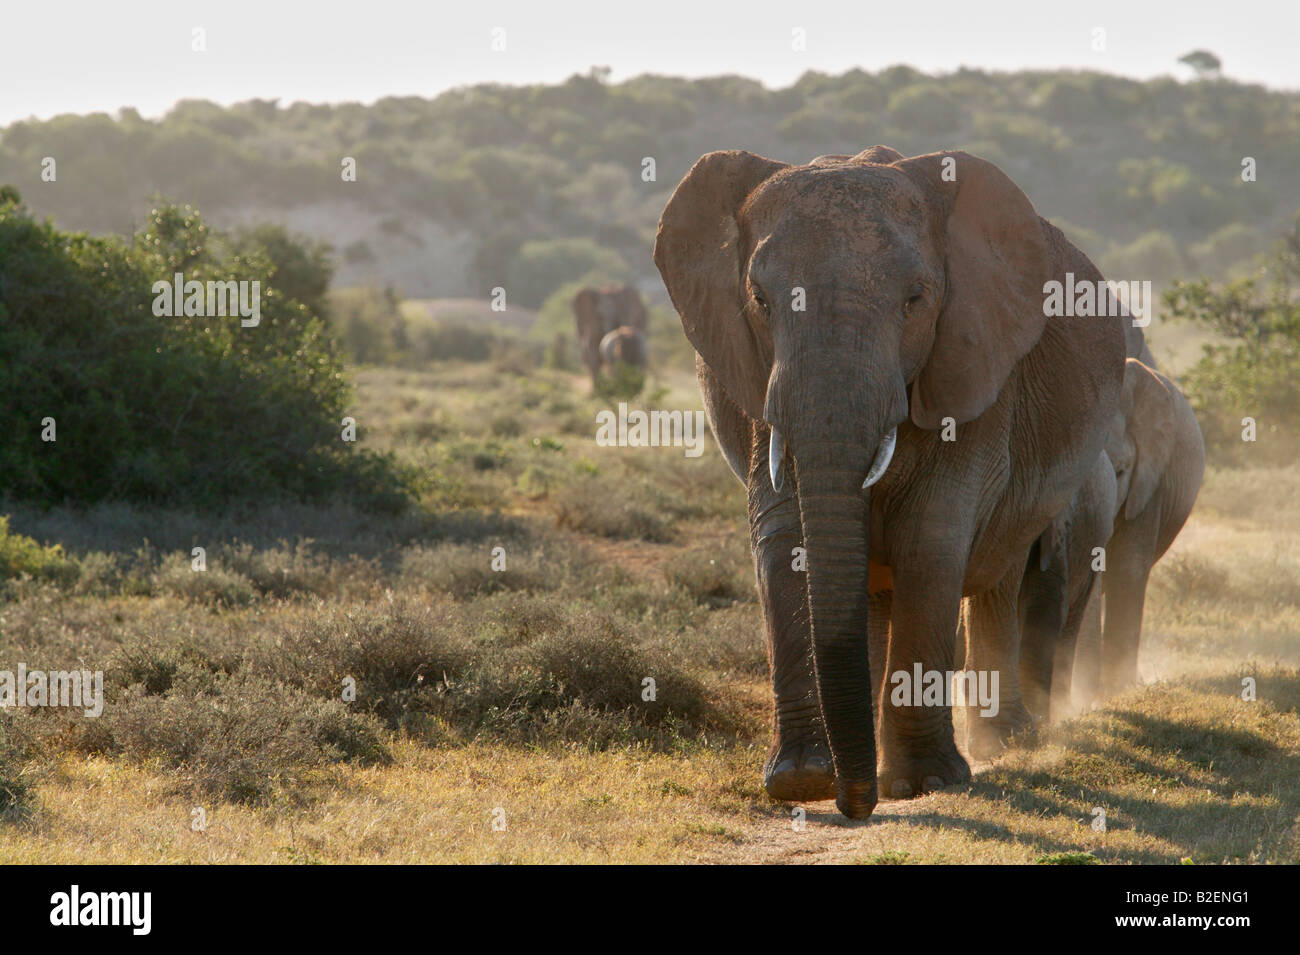 A herd of elephants walking down a path towards the camera - Stock Image